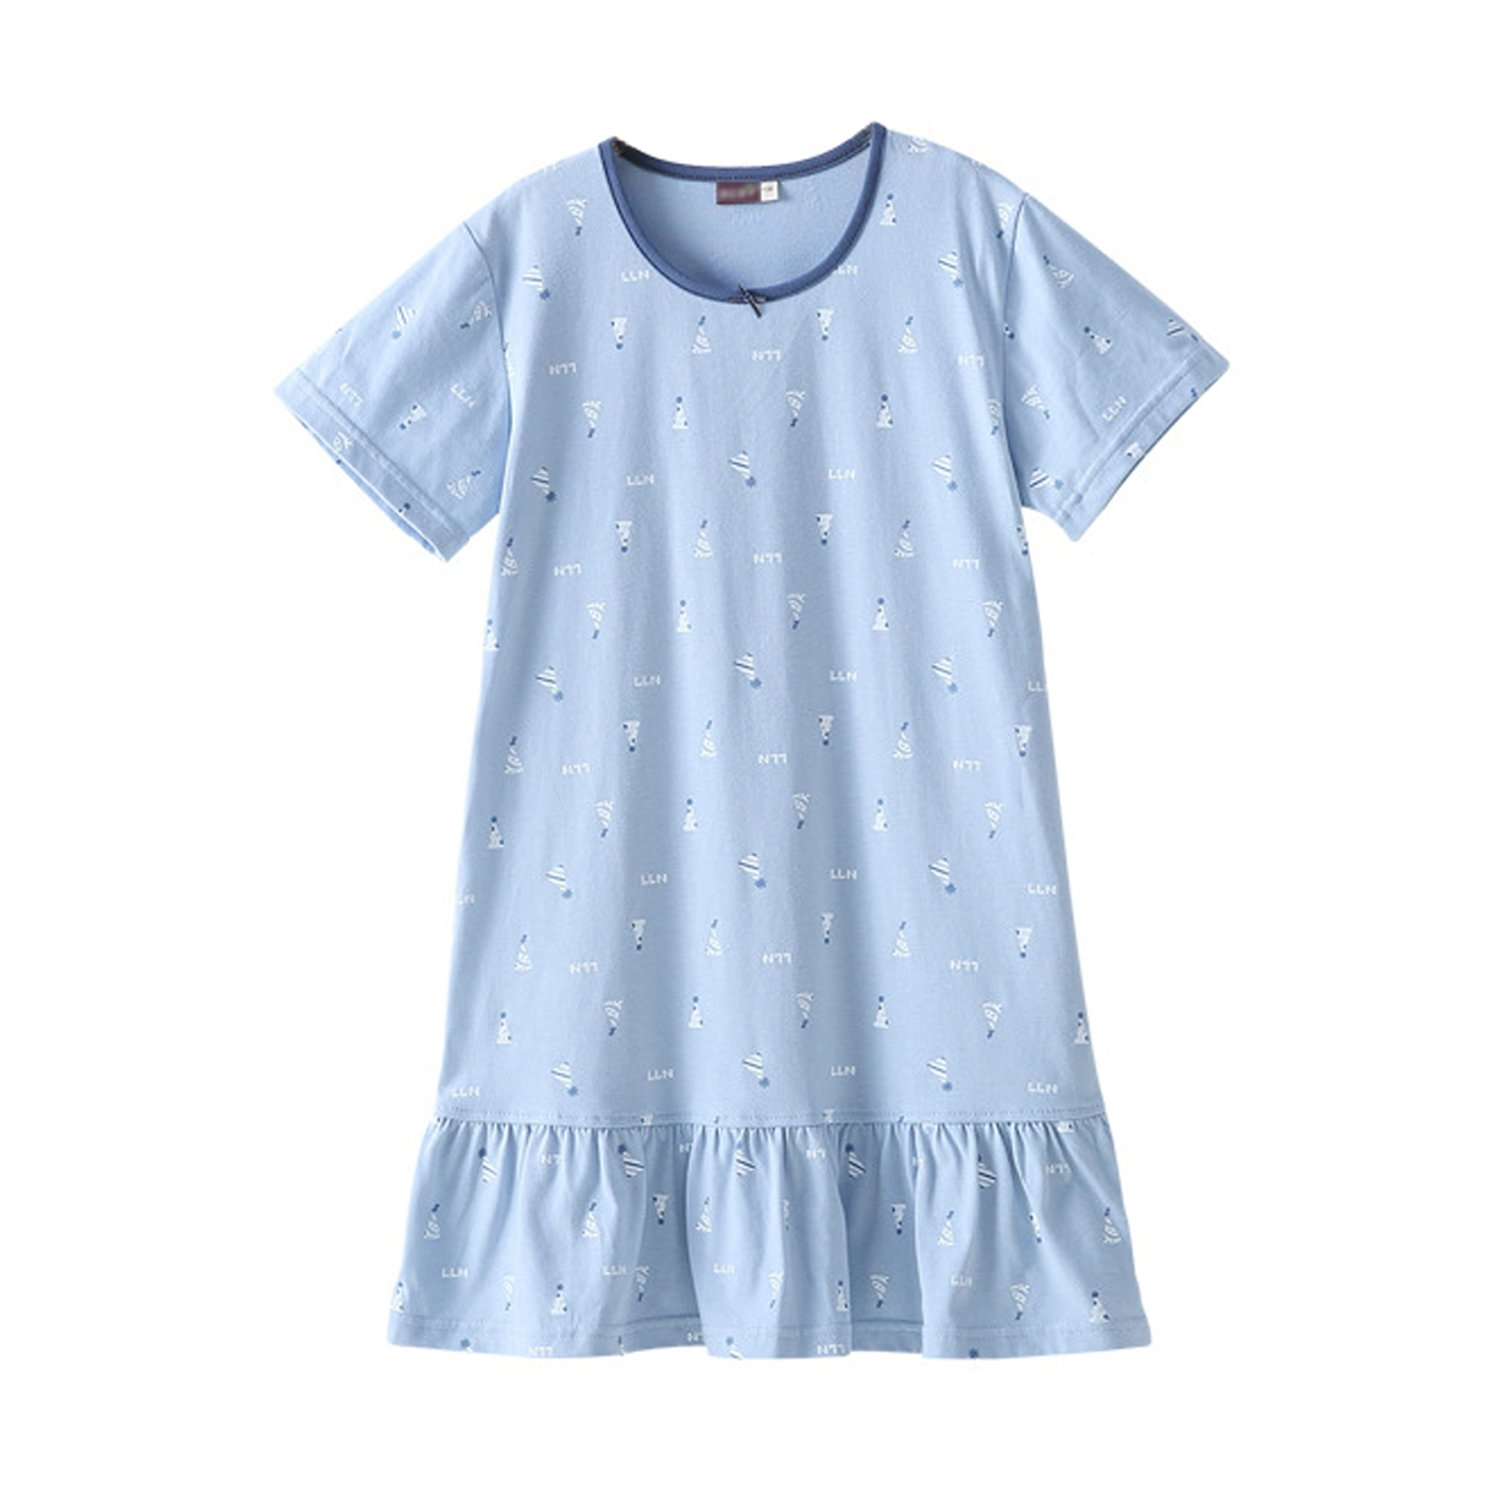 QMore Girls' Princess Nightgowns Summer Sleep Shirts 100% Cotton Sleepwear for 3-9 Years (7-8 Years/Tag140, Blue)